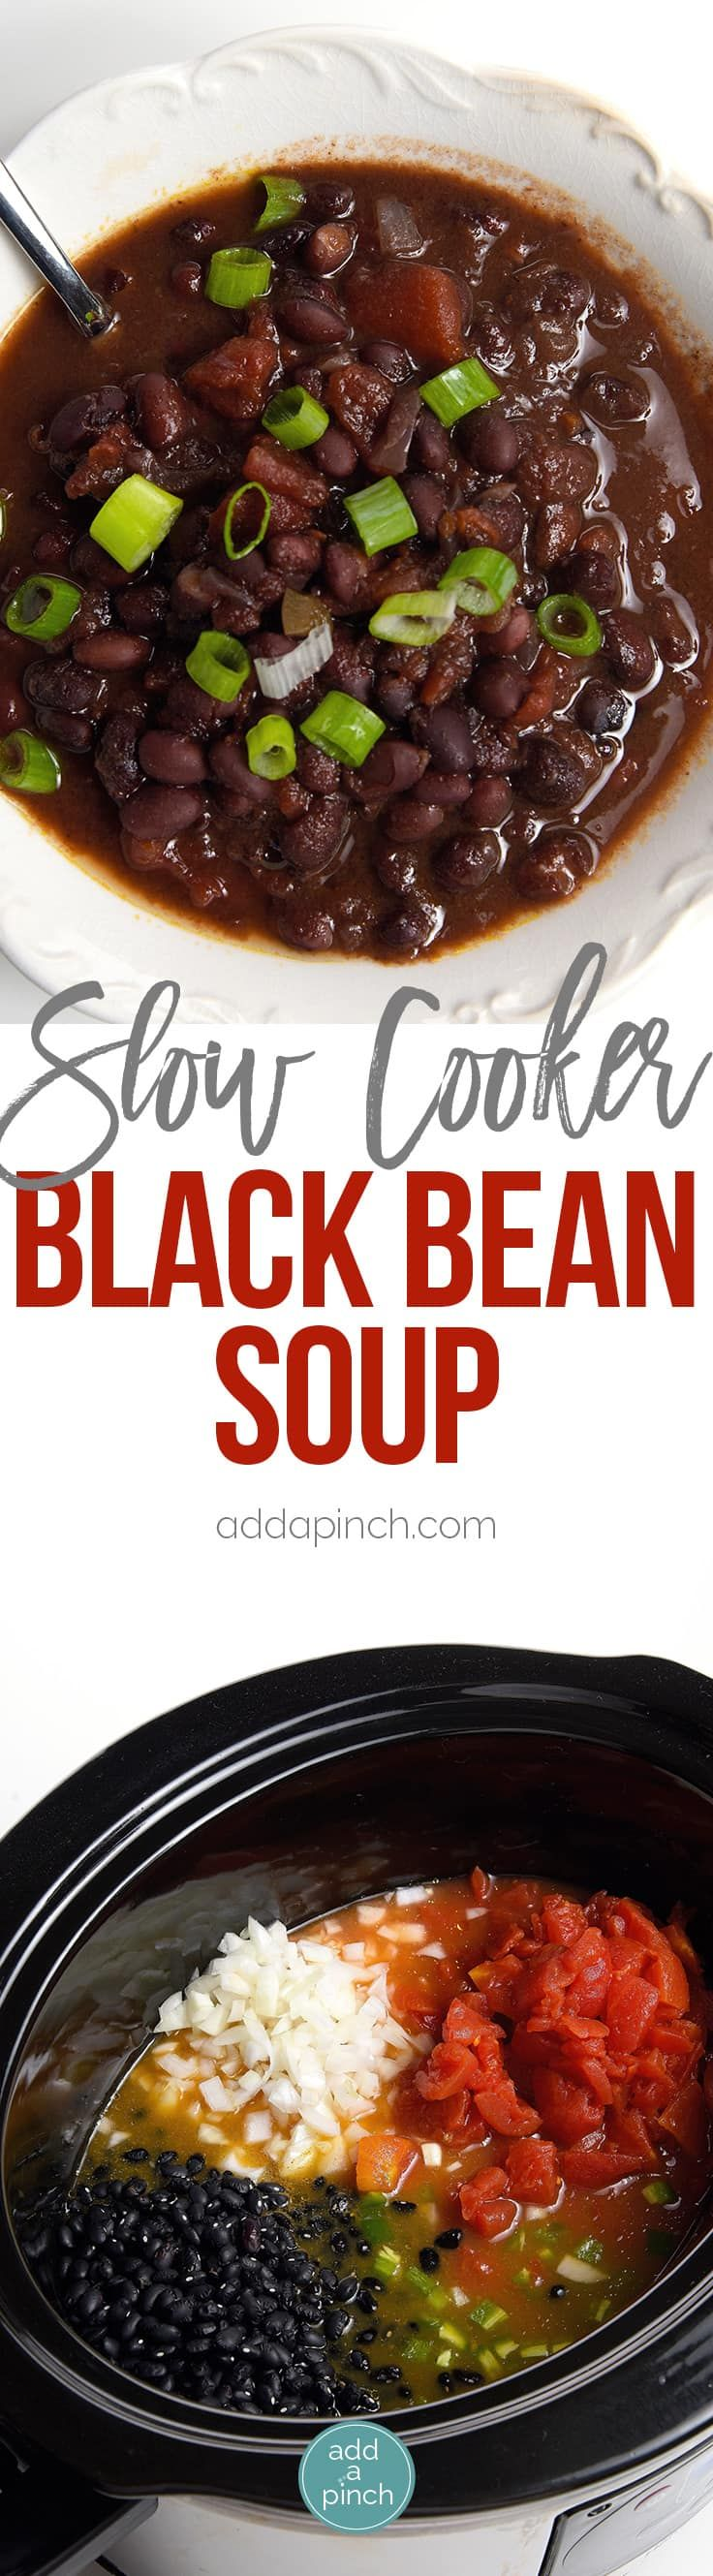 Black Bean Soup Recipe - This delicious black bean soup is packed with flavor and made even easier with the slow cooker! // addapinch.com